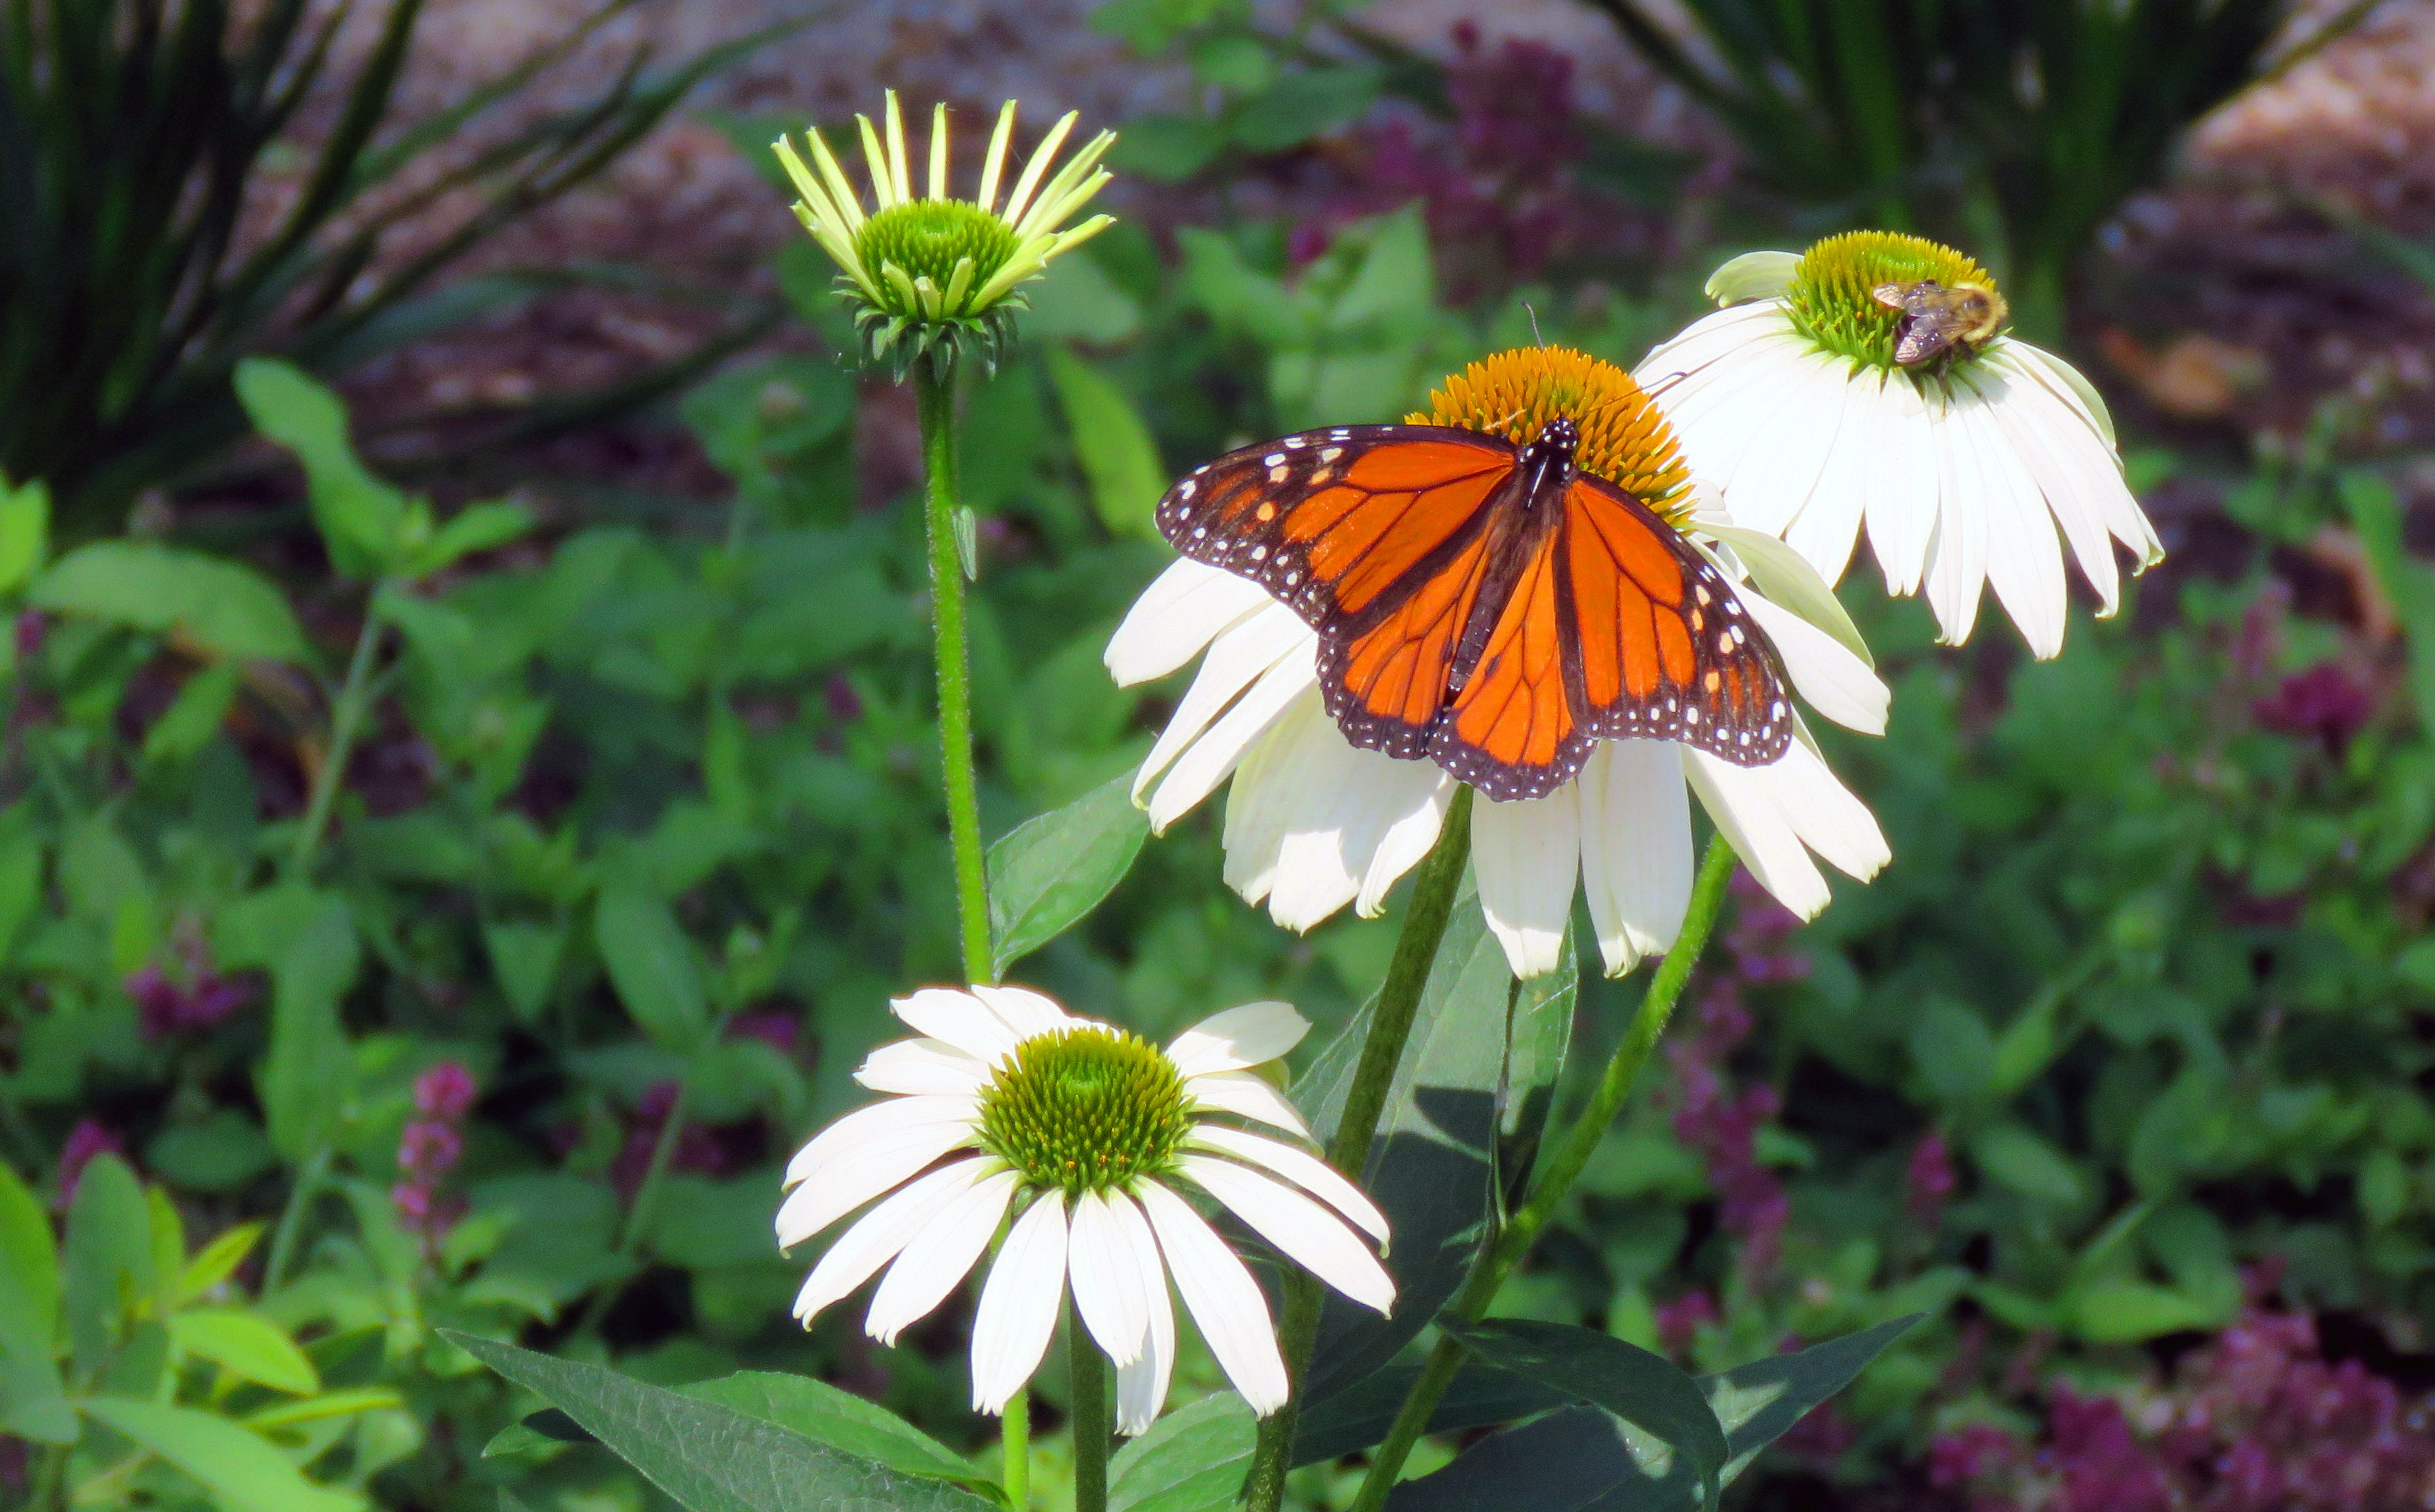 Free stock photo of bee, Butterfly and a bee, butterfly on a flower, coexist